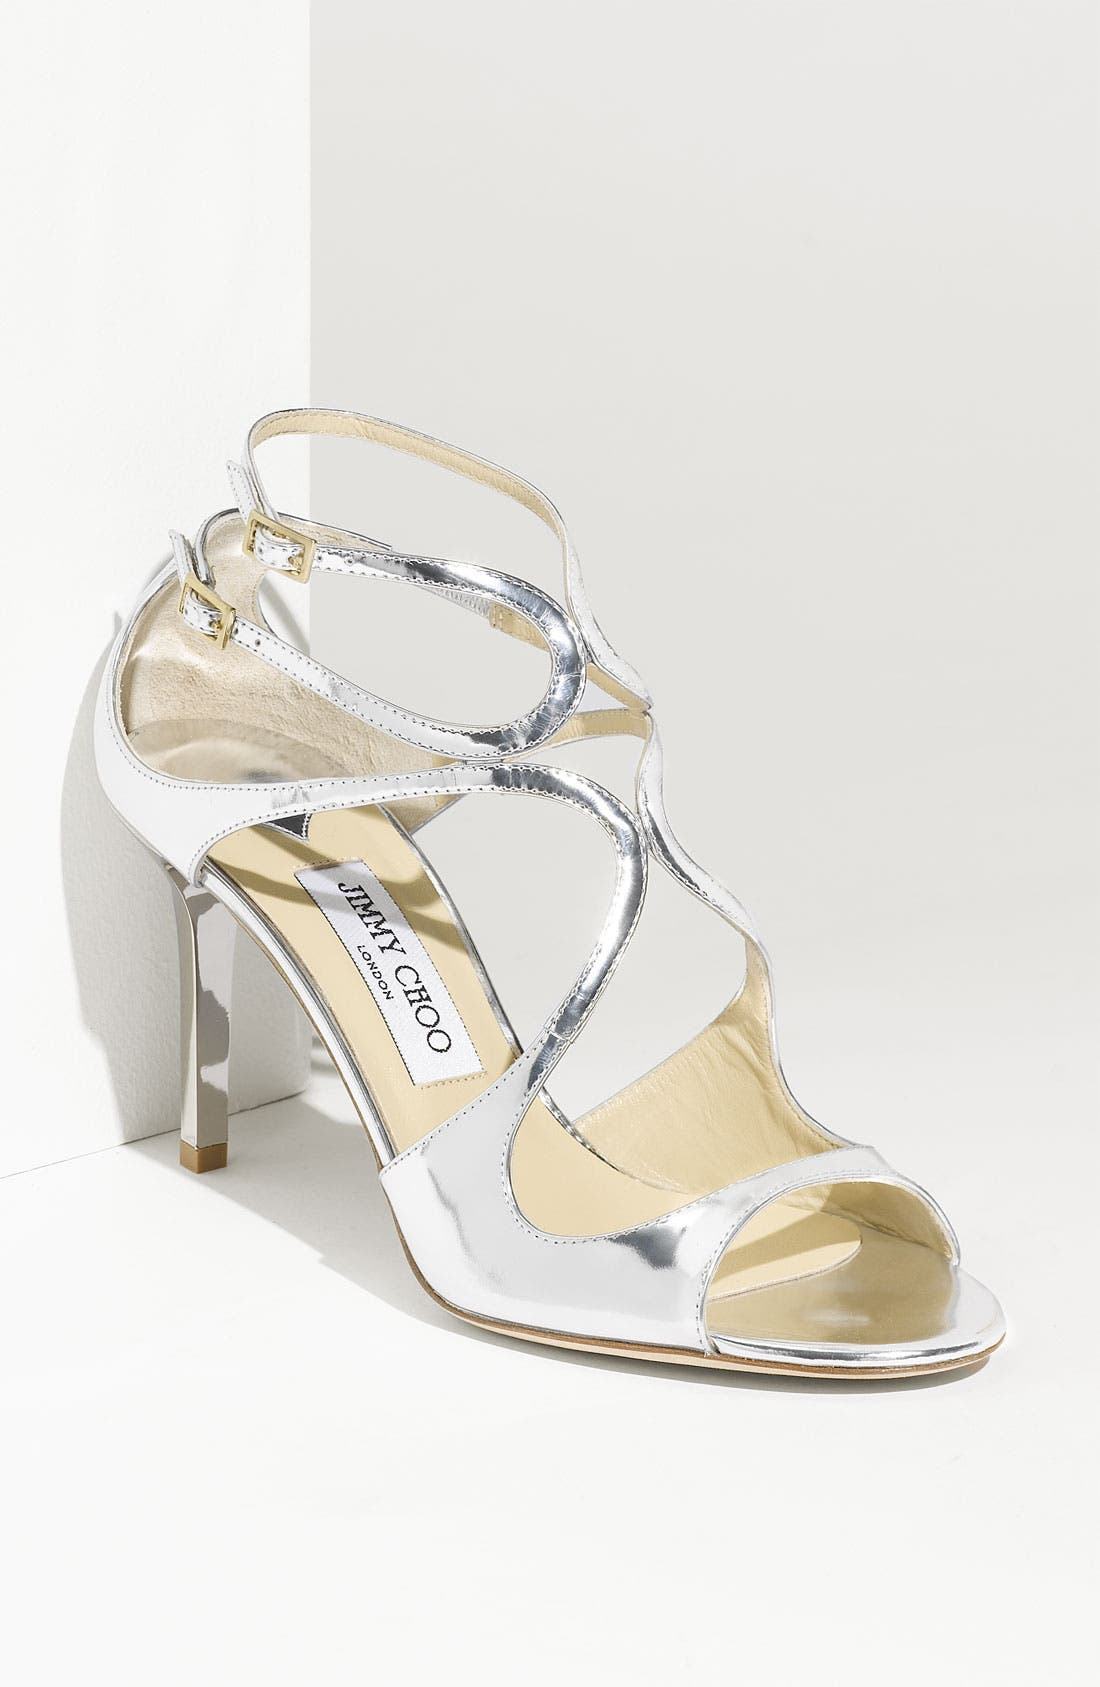 Alternate Image 1 Selected - Jimmy Choo 'Ivette' Strap Sandal